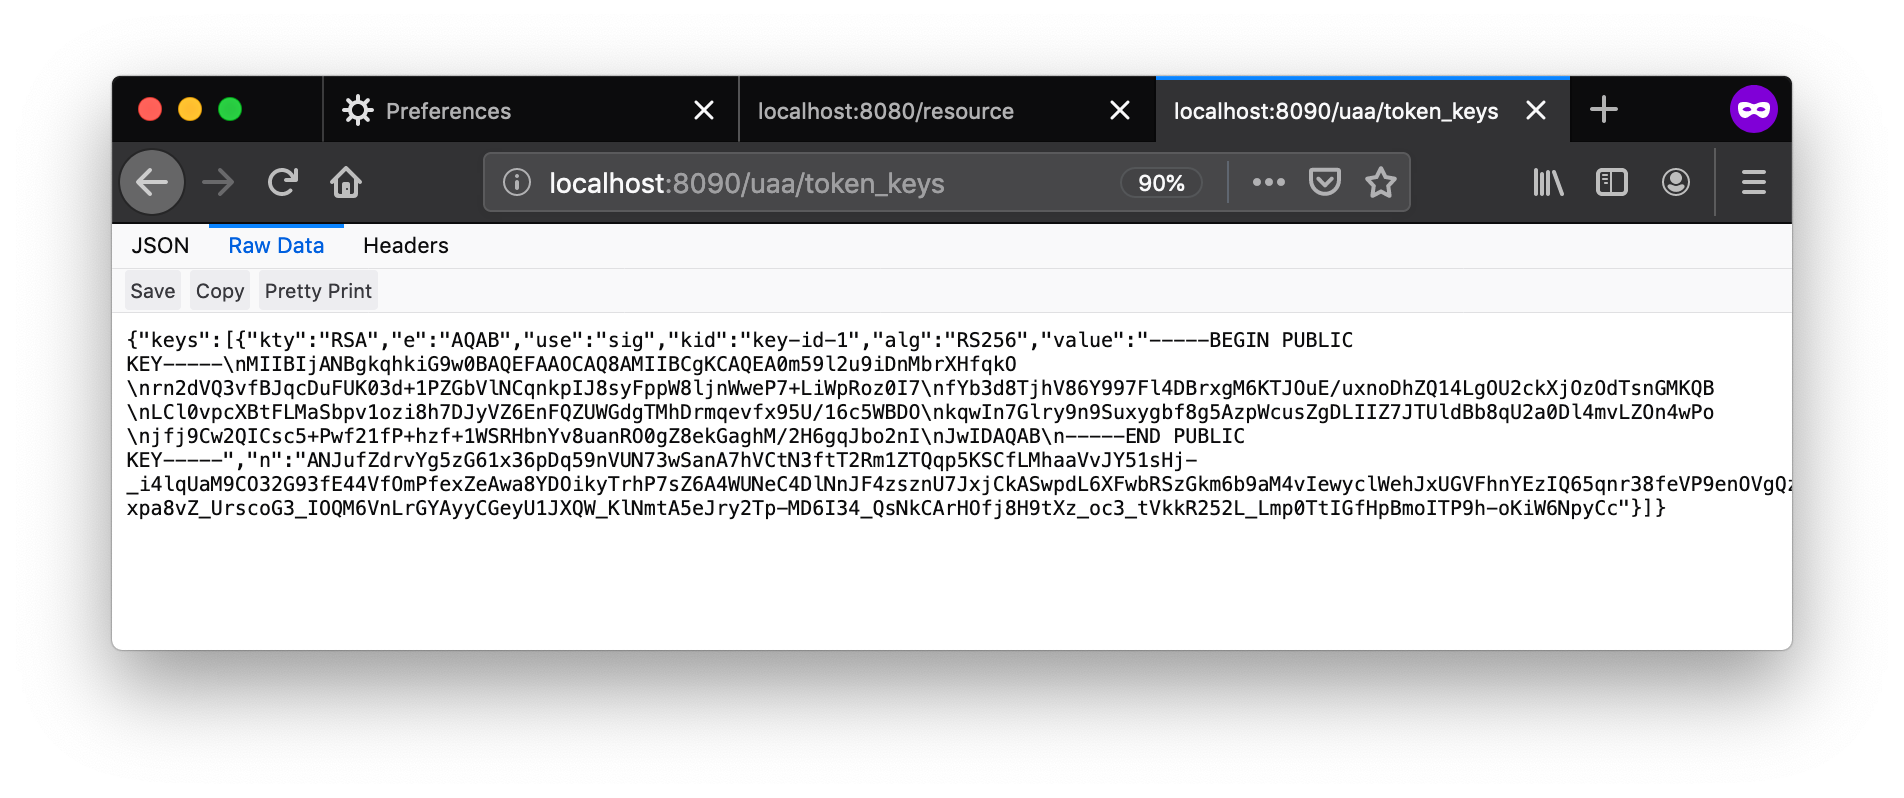 An example of the token keys endpoint data showing a JSON object containing public keys